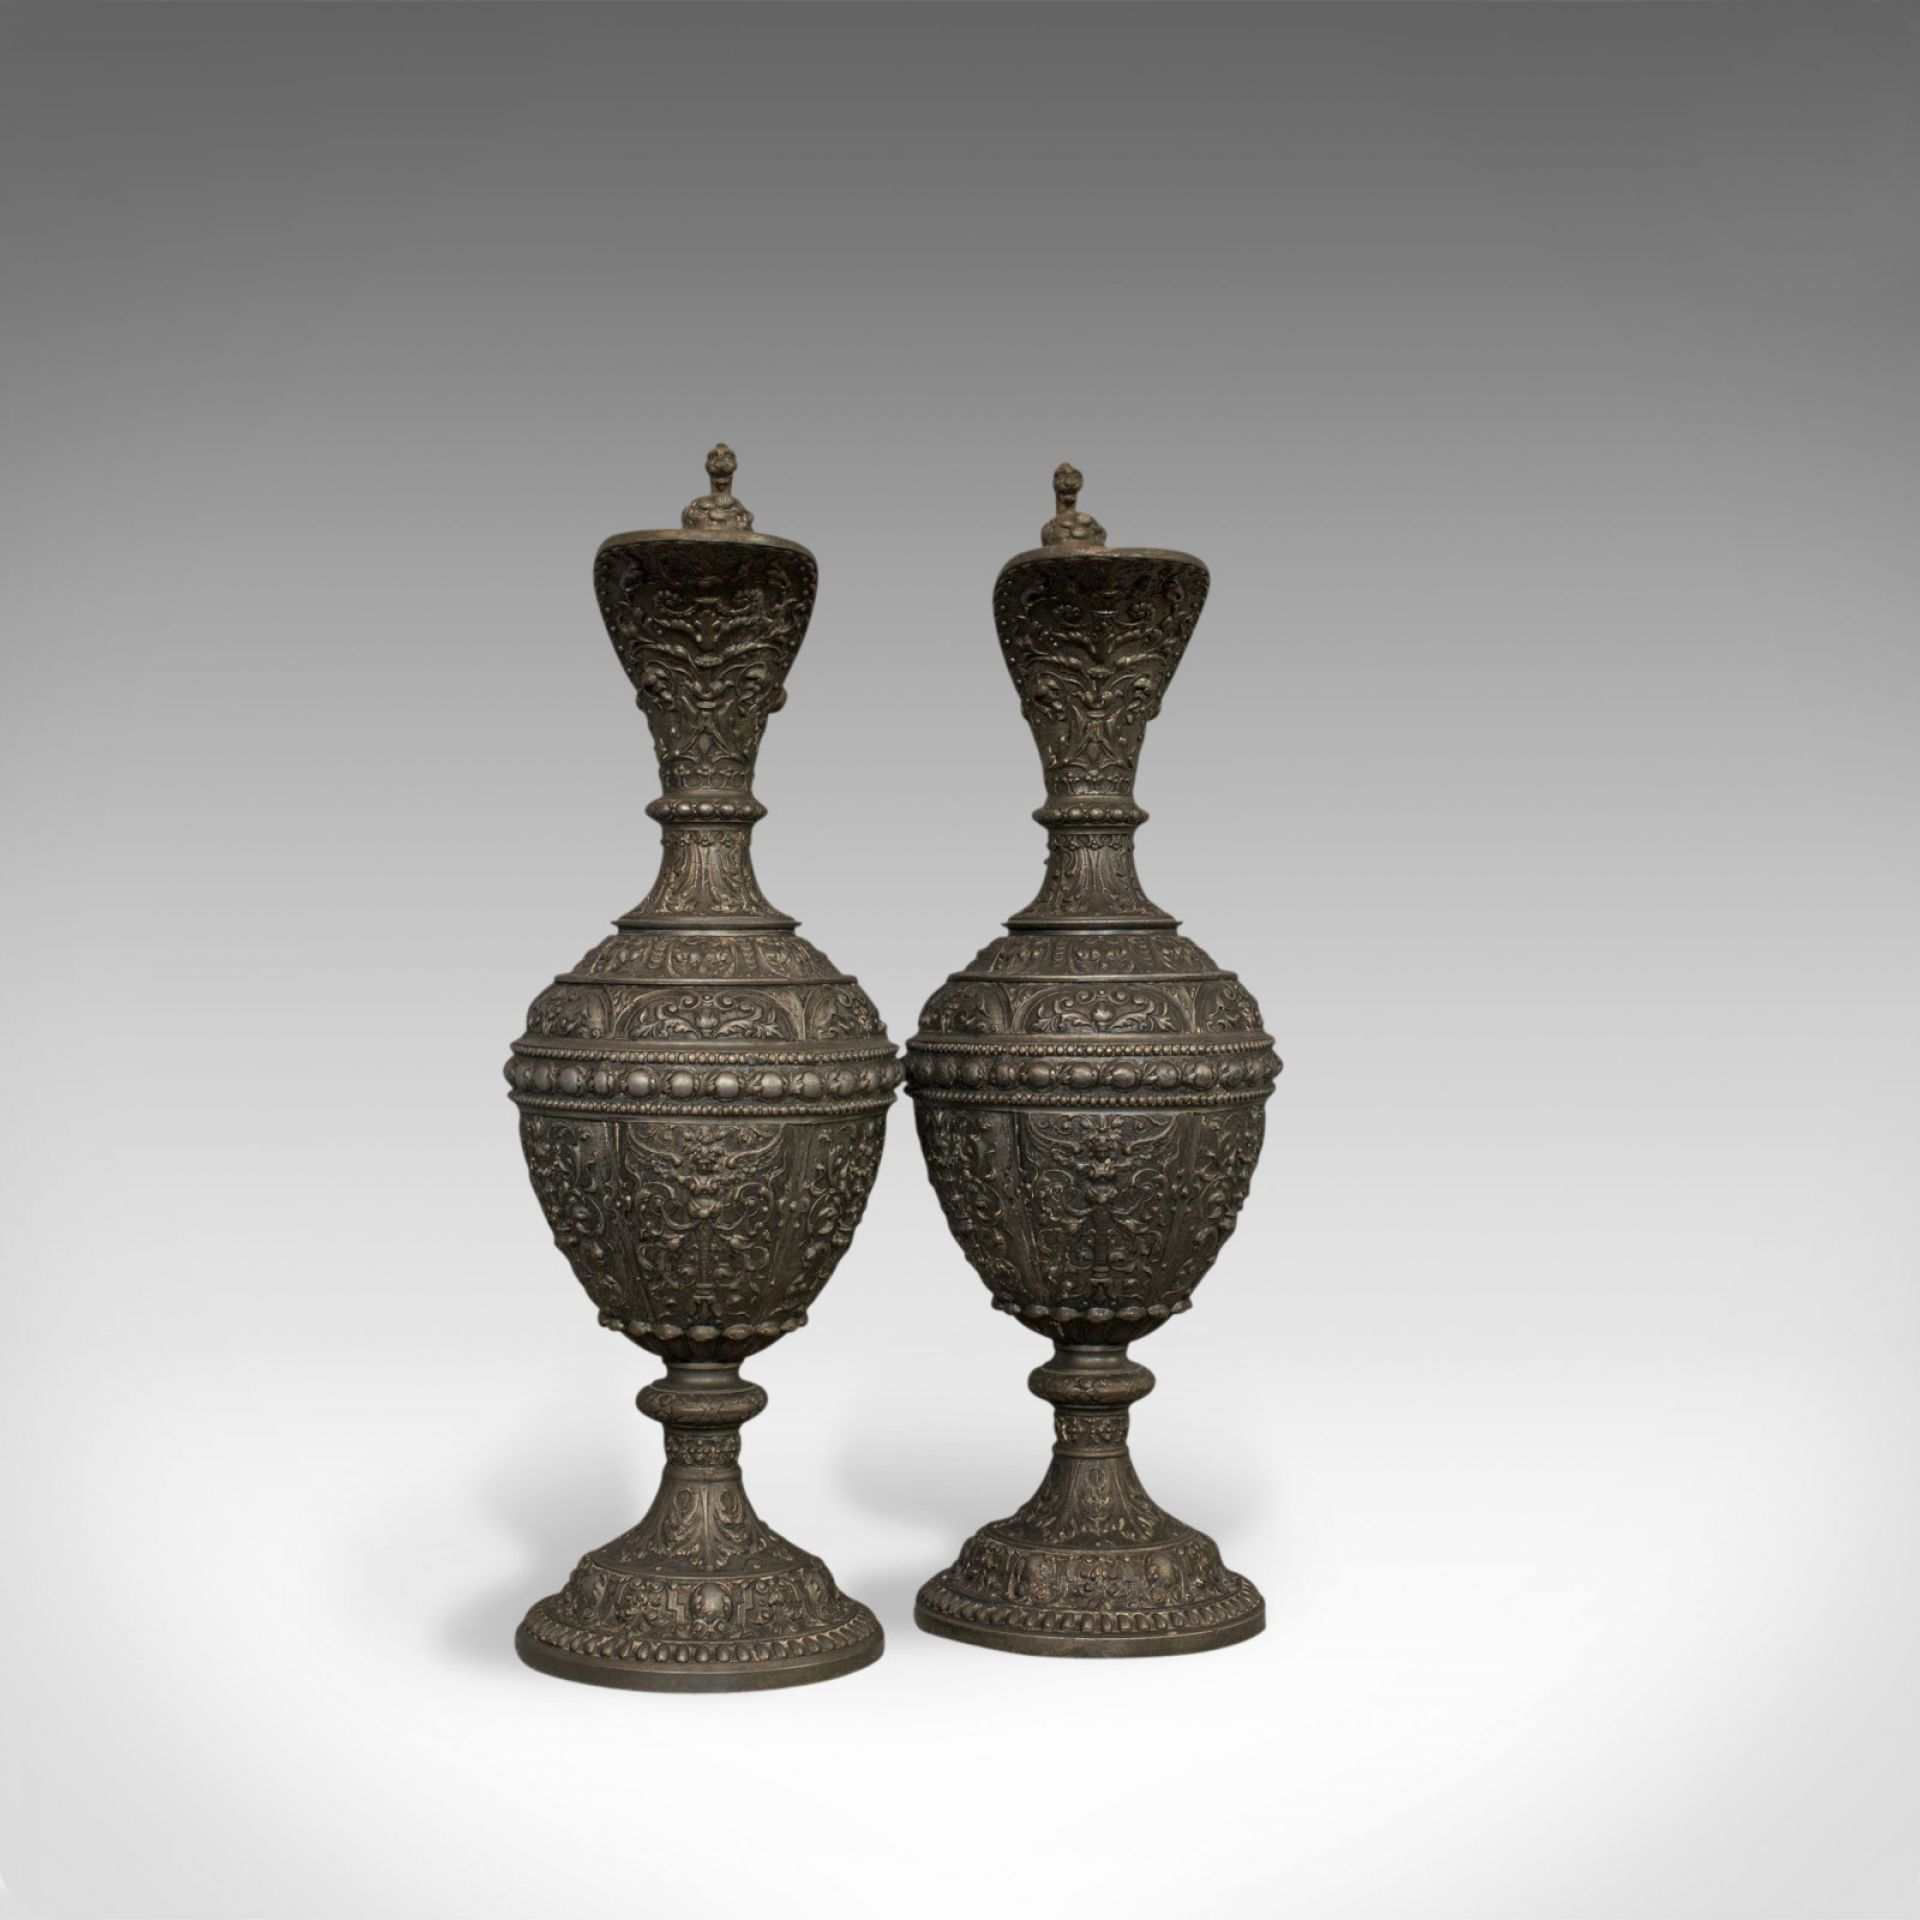 Pair Of, Antique Ewers, Classical Taste, French, Bronze Spelter, Jug, Pitcher